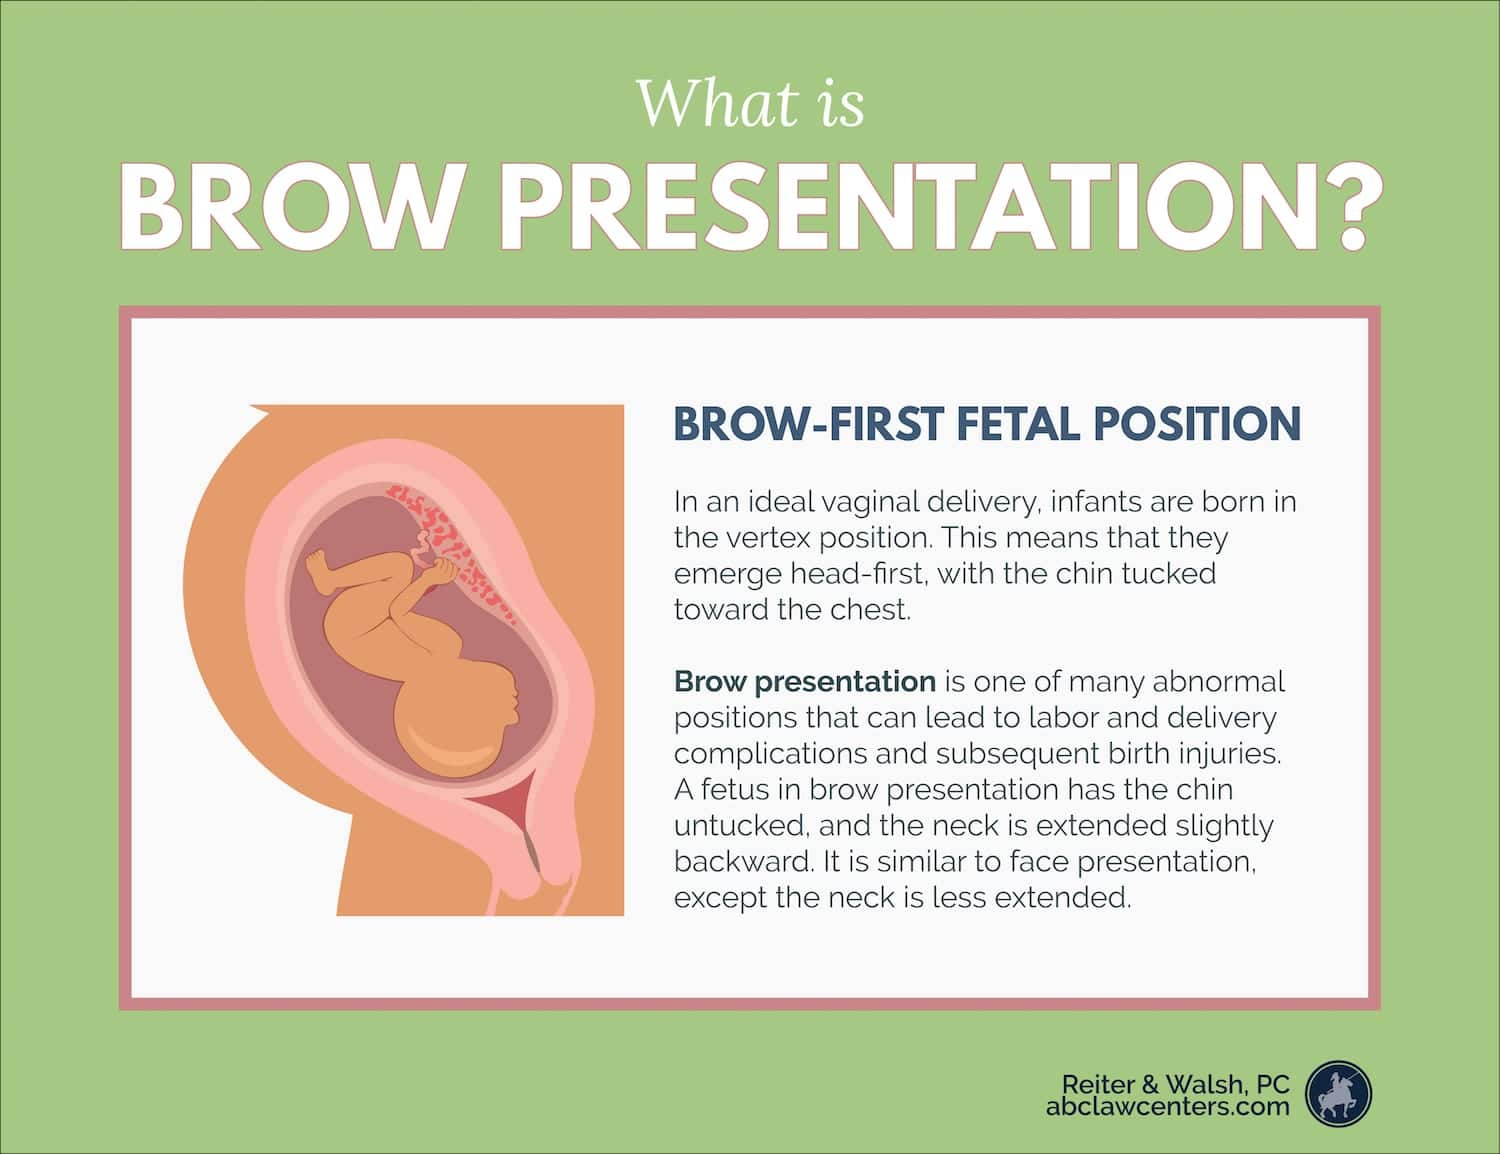 Brow Presentation During Childbirth